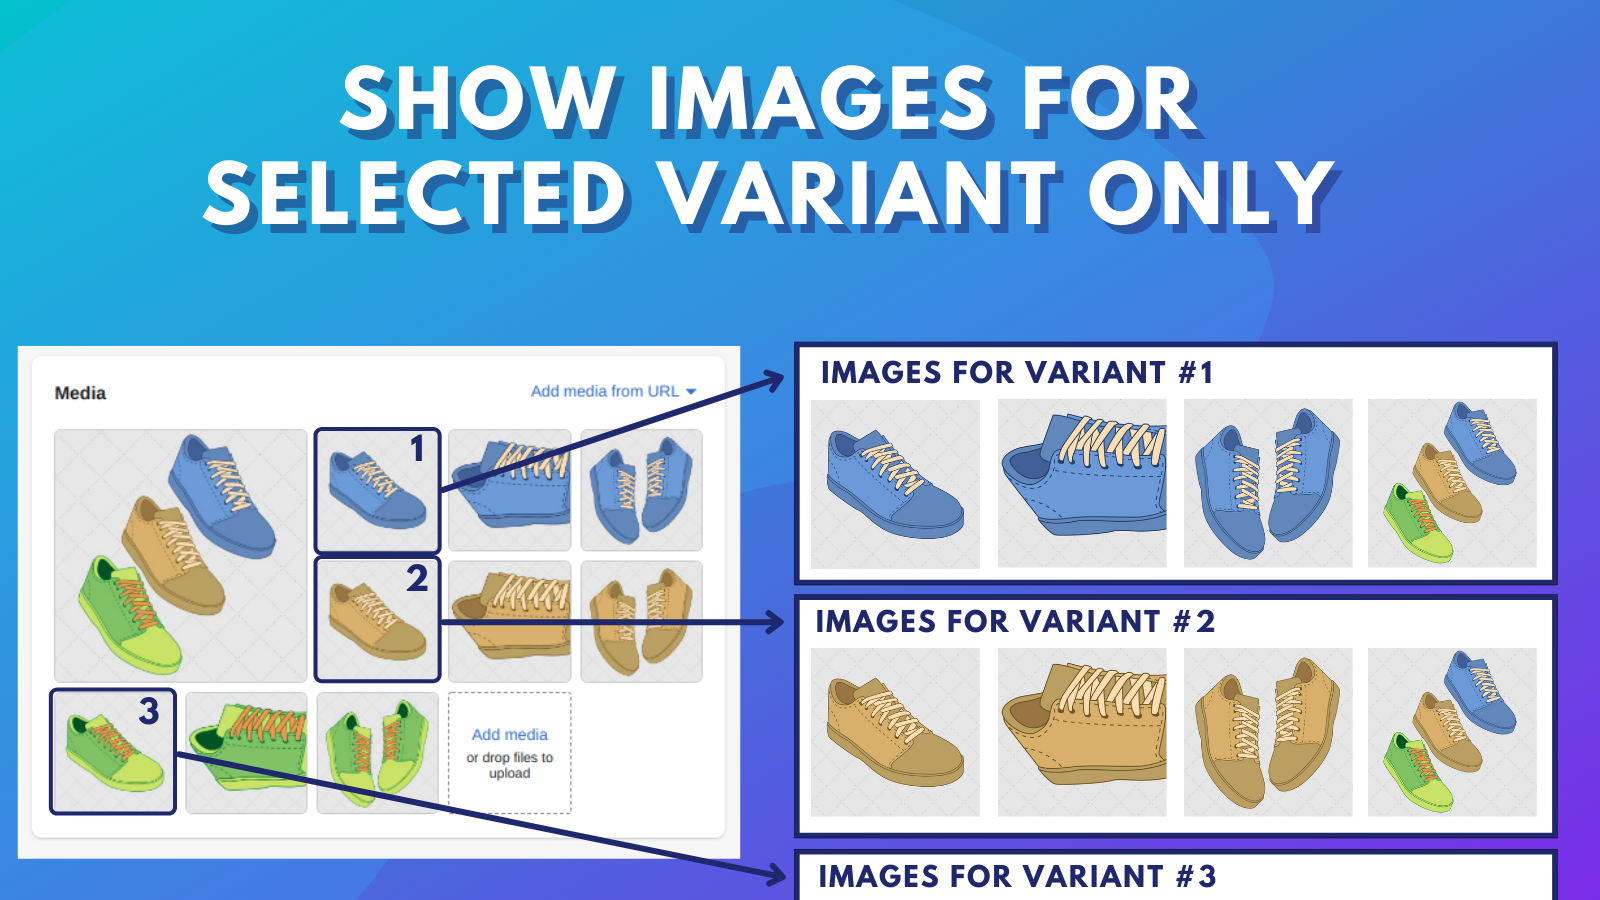 Show images for selected variant only